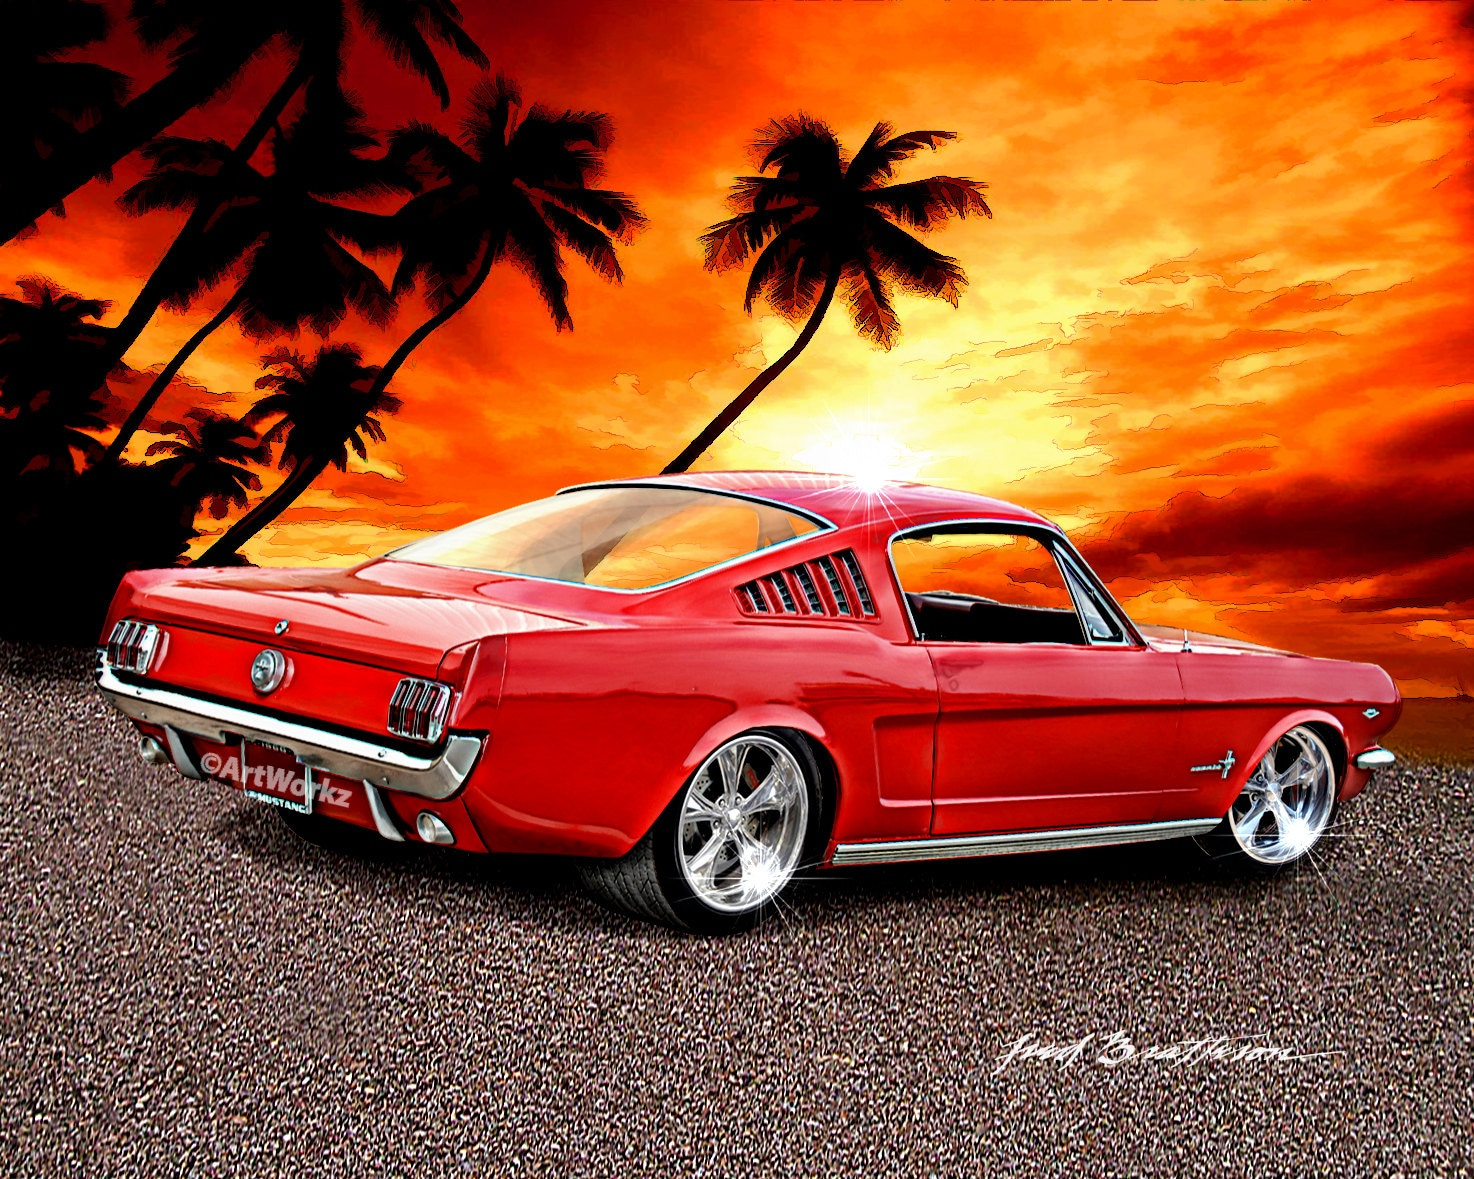 Hot Rod Art 1965 Ford Mustang Fastback Classic Car